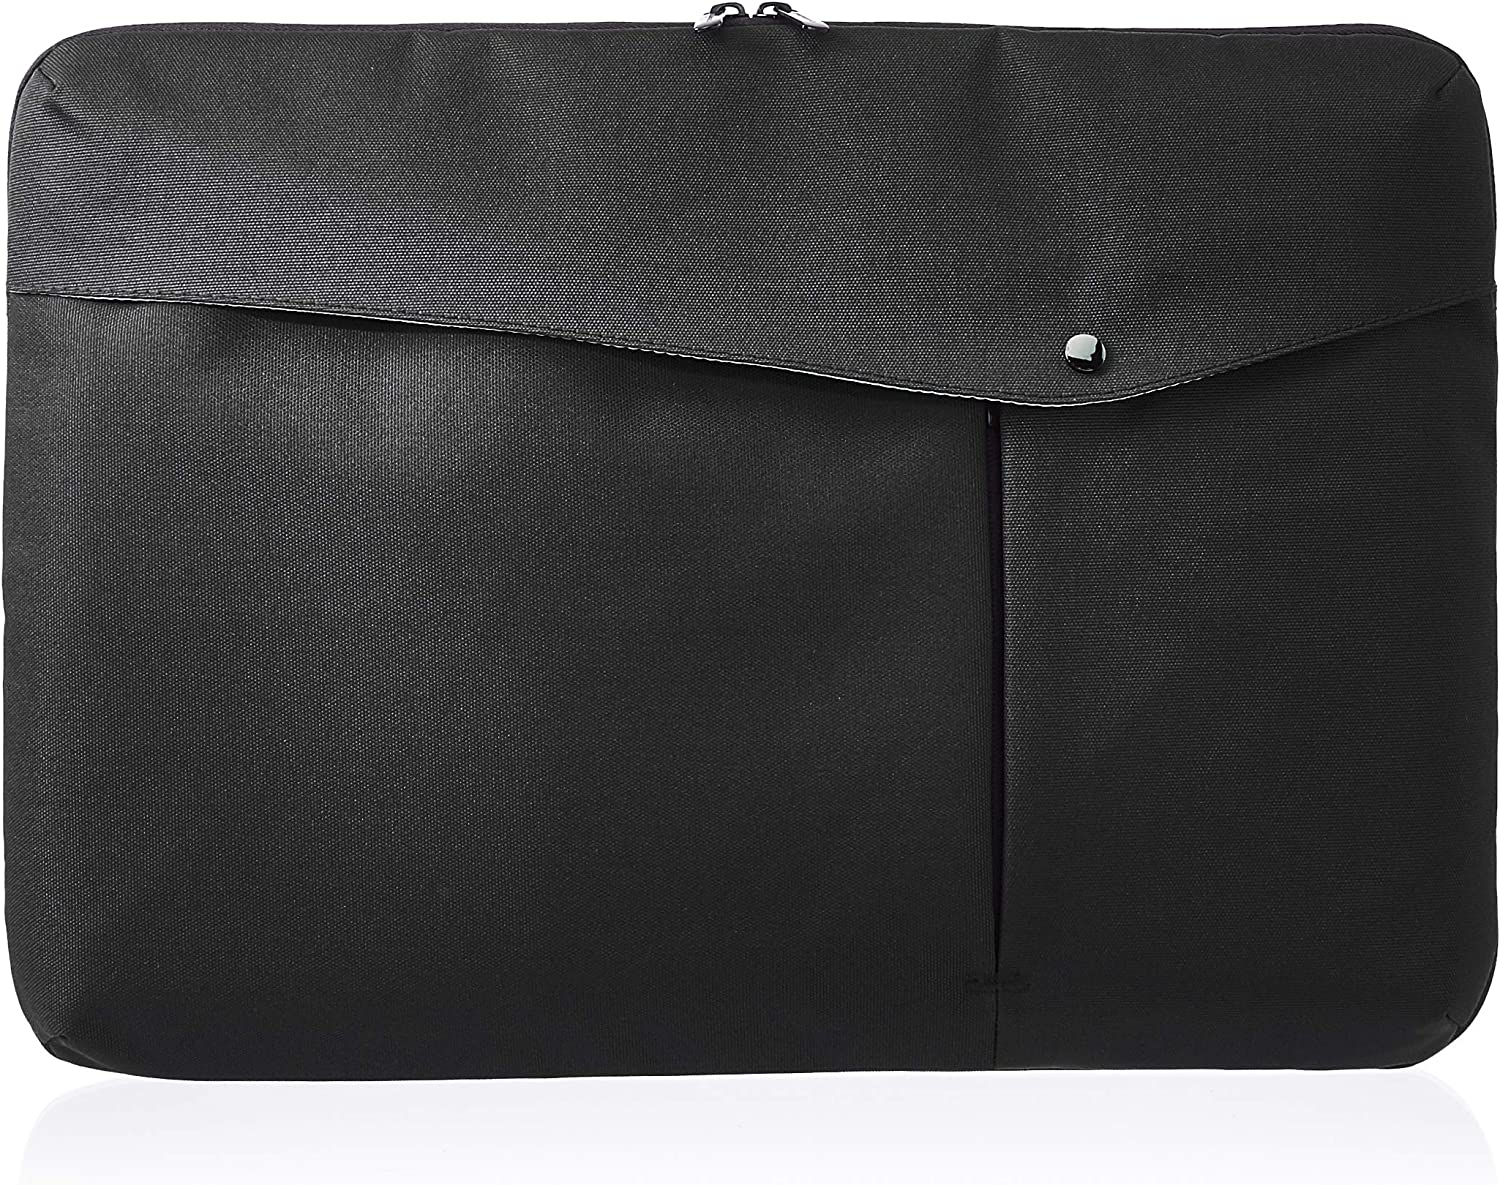 AmazonBasics Laptop Sleeve - 17-Inch, Black